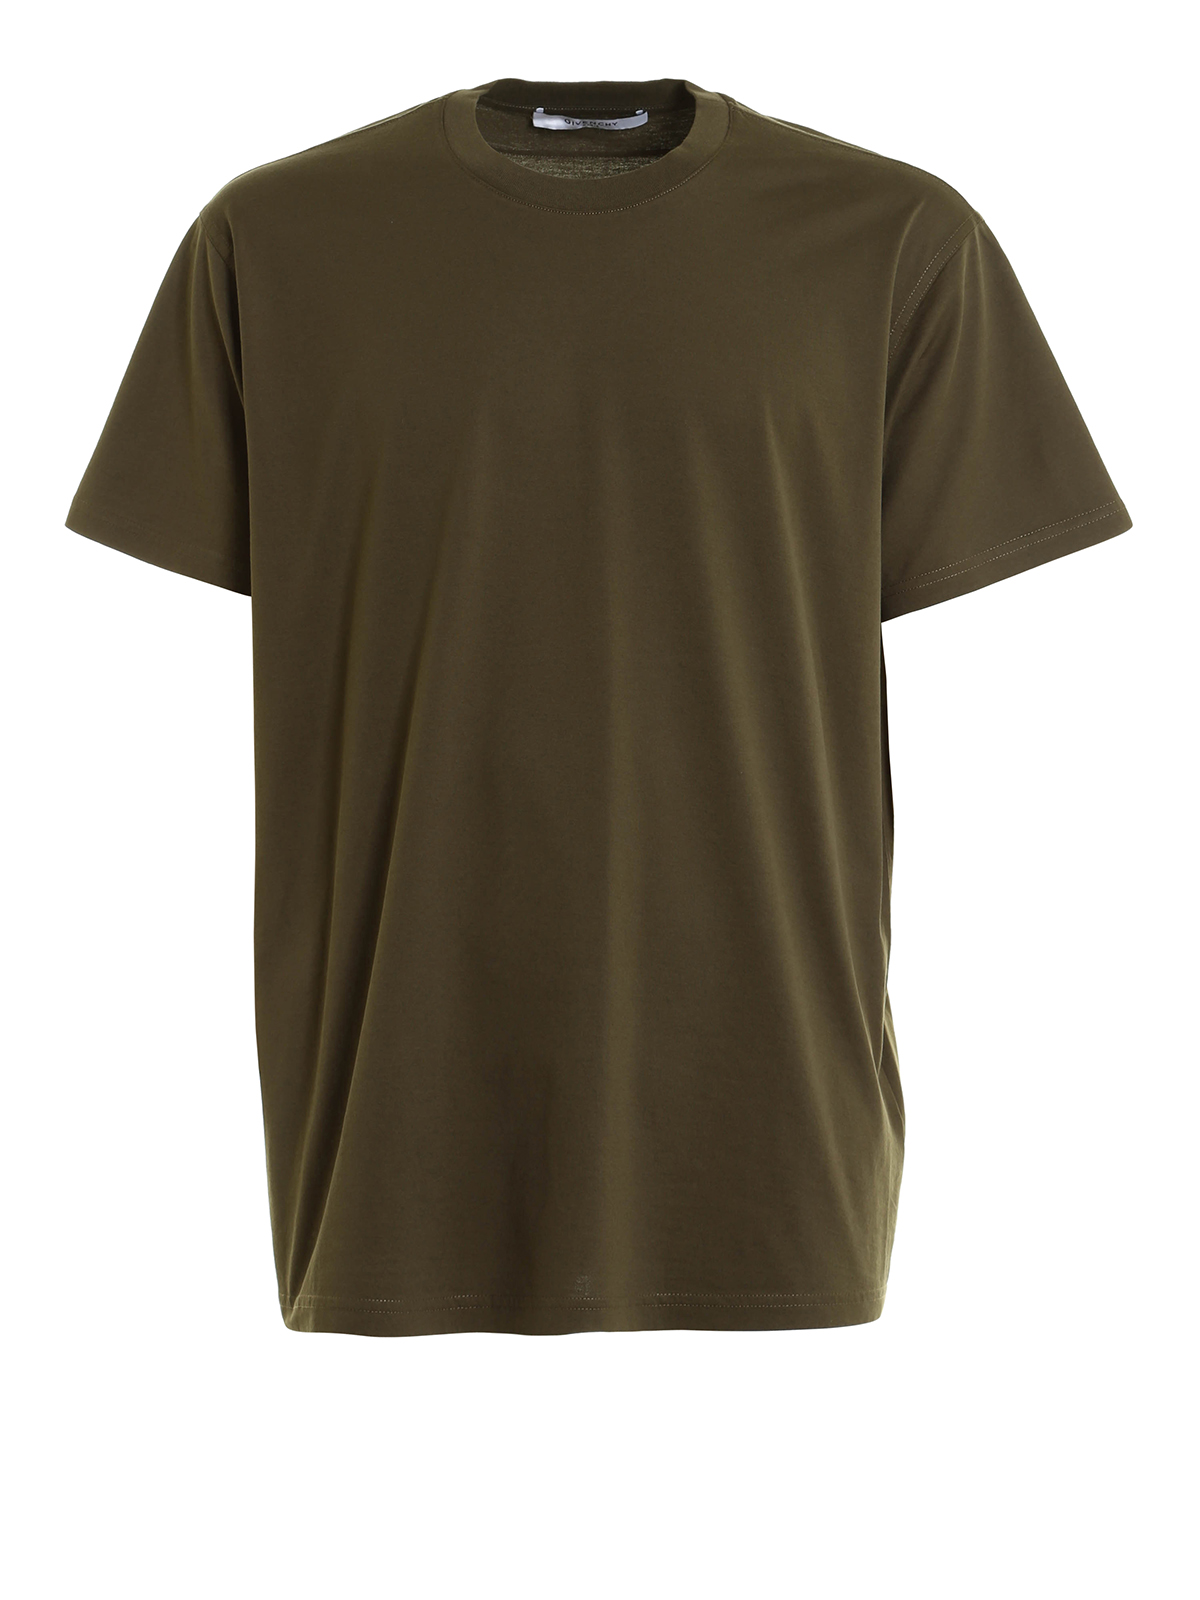 Silk embroidery cotton t shirt by givenchy t shirts ikrix for Givenchy t shirts for sale